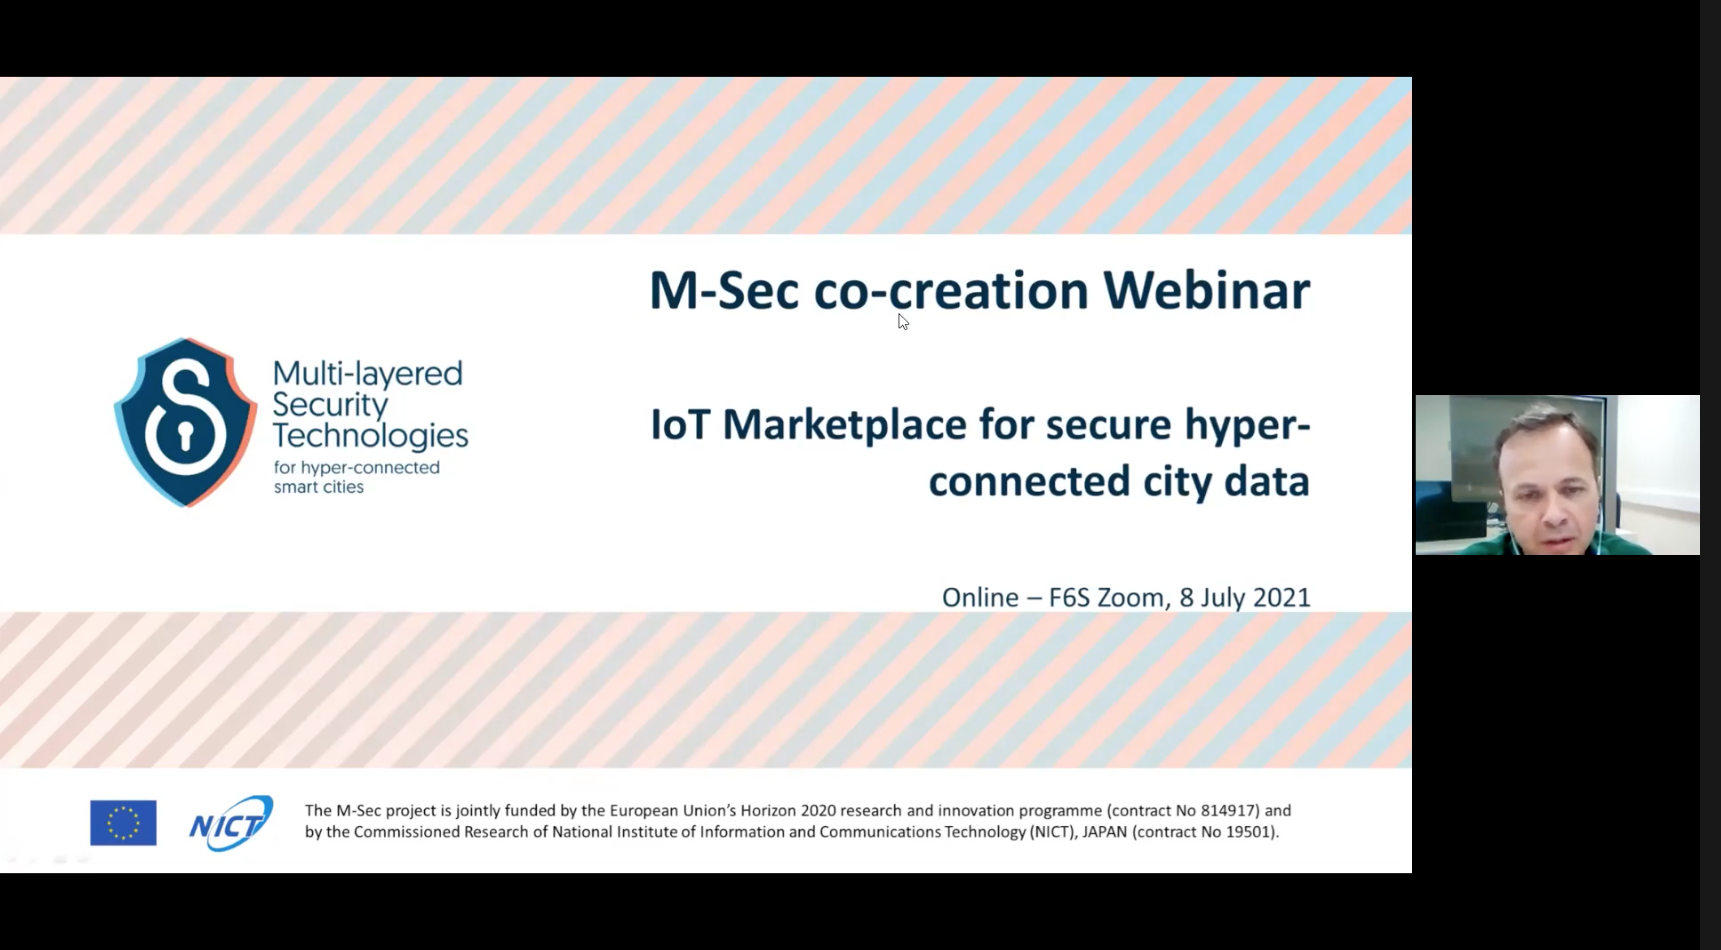 Recap M-Sec's Webinar on IoT Marketplace for secure hyper-connected city data